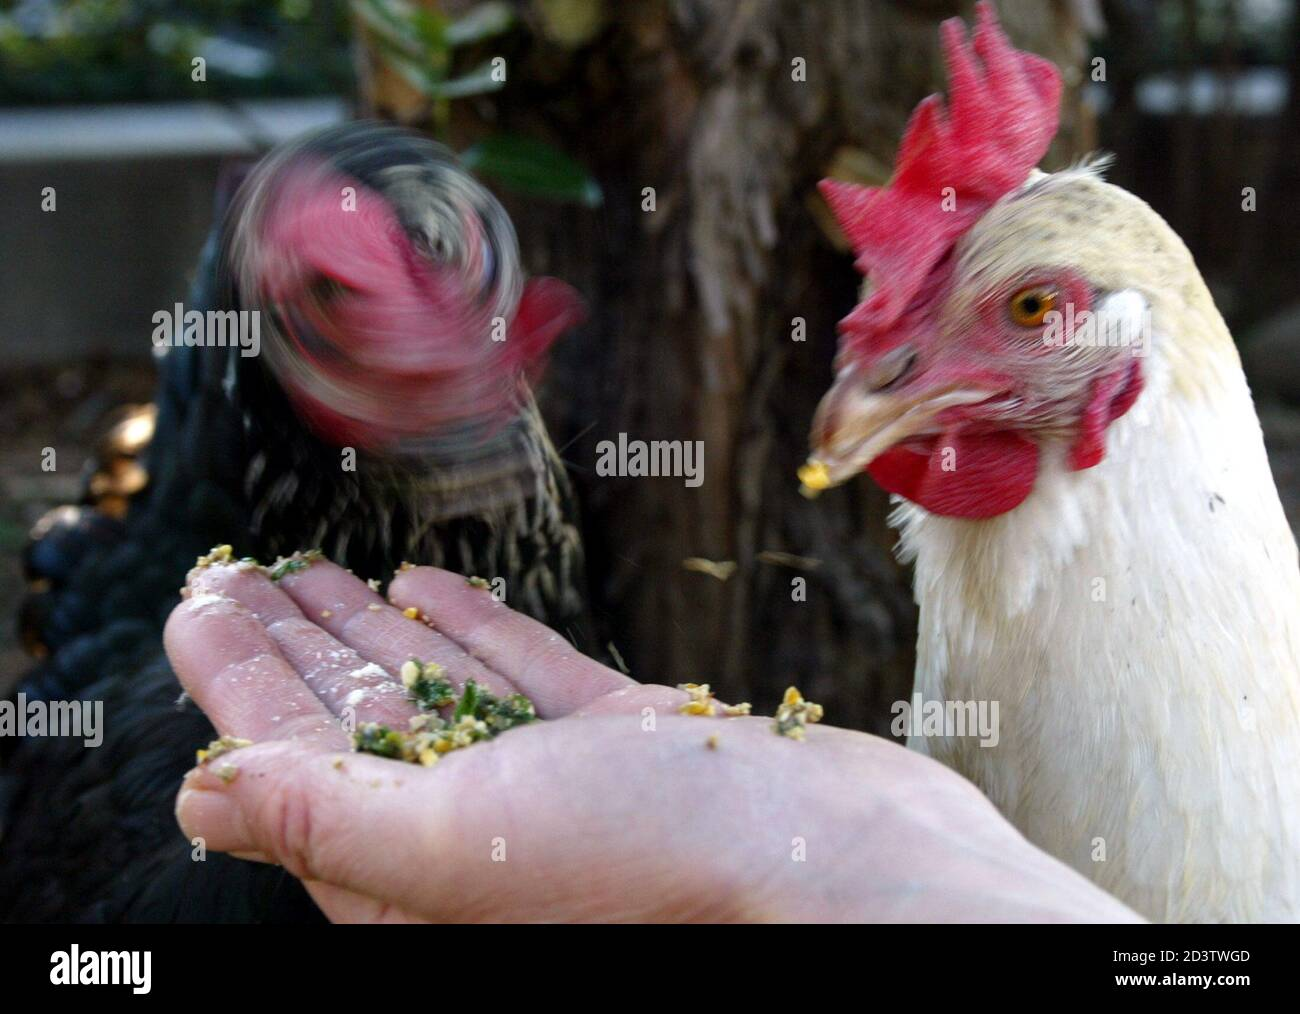 Chickens Eat Feed Mixture At Kanagawa Livestock Hygiene Station In Atsugi West Of Tokyo February 12 2004 Japan Has Largely Escaped The Effects Of The Deadly Avian Flu Virus That Has Wreaked